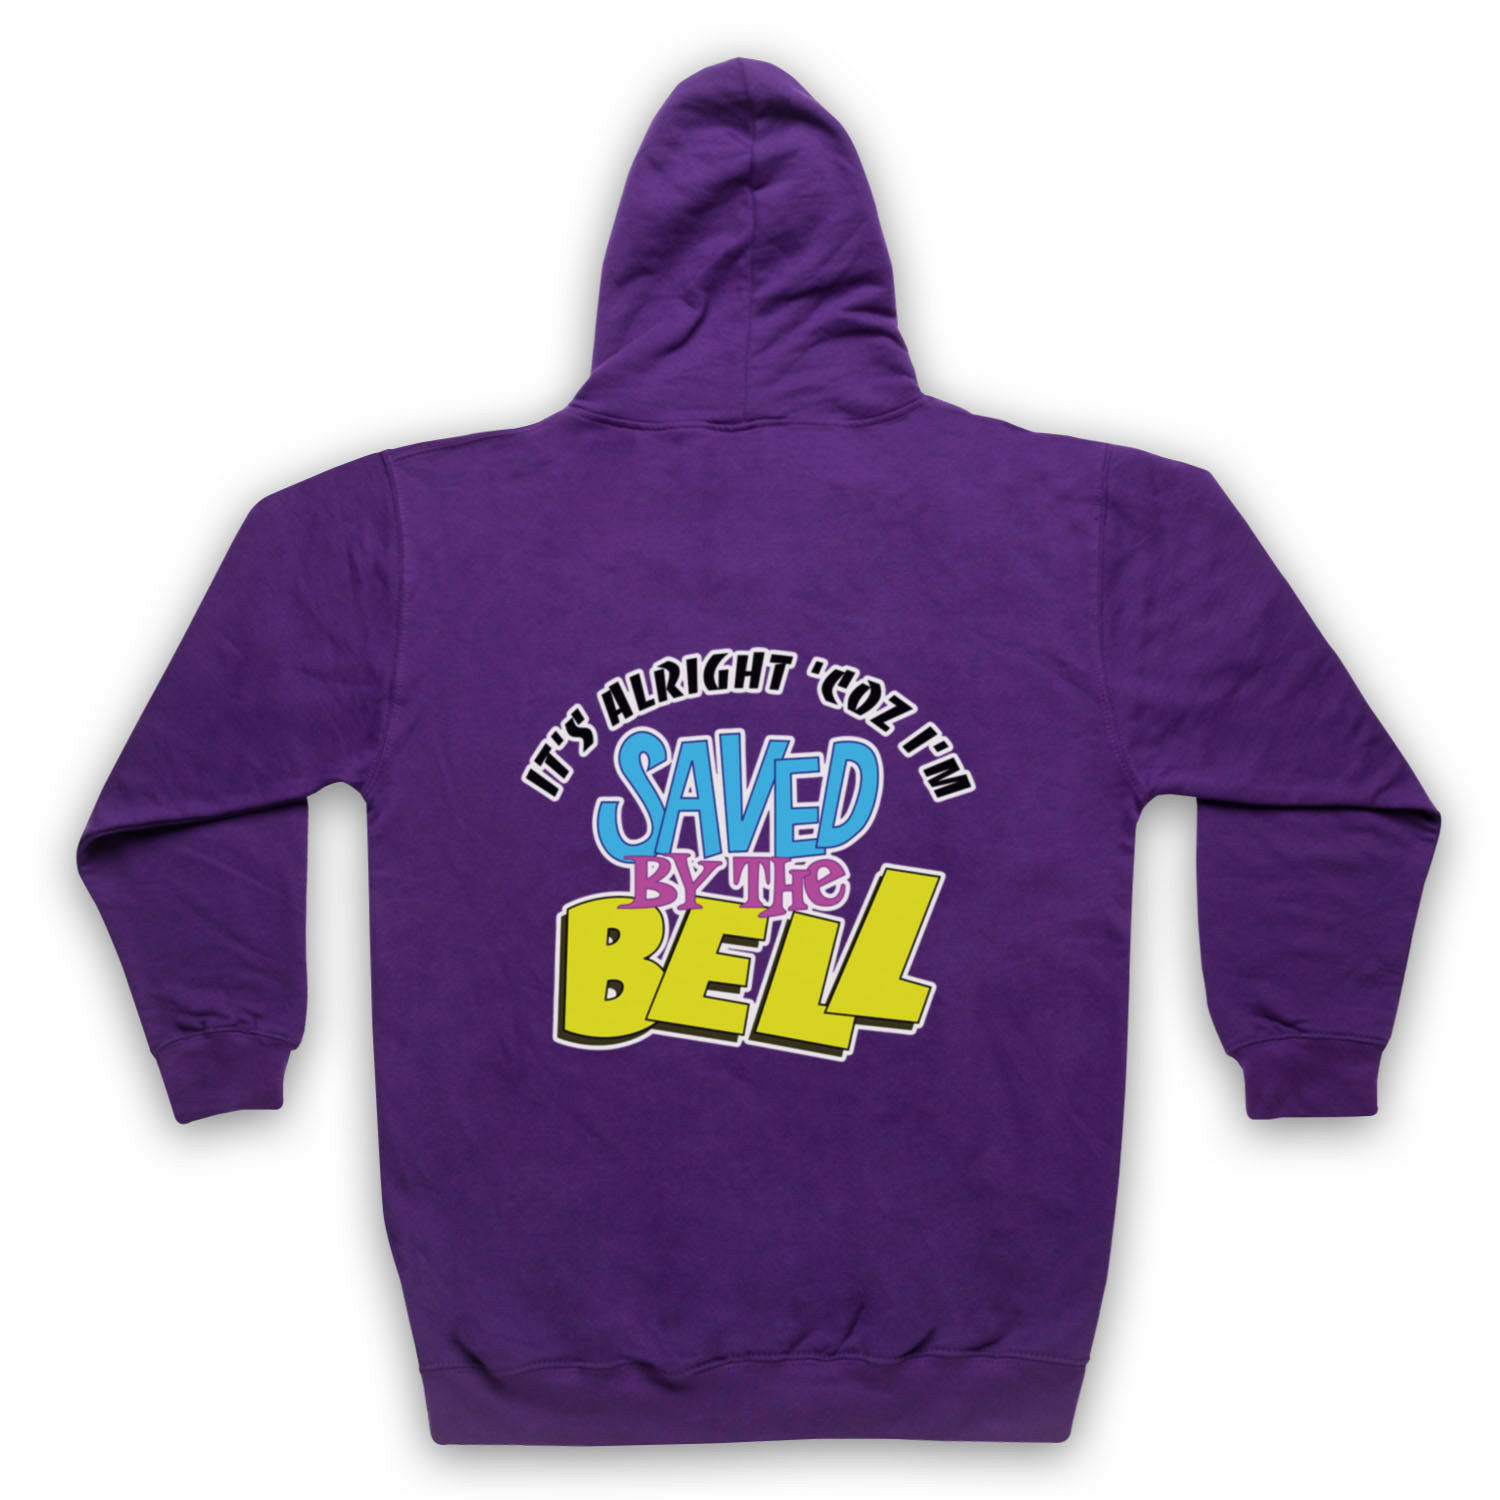 IT'S ALRIGHT UNOFFICIAL SAVED BY BY BY THE BELL RETRO KIDS TV ADULTS & KIDS HOODIE | Neue Sorten werden eingeführt  a0a6ee